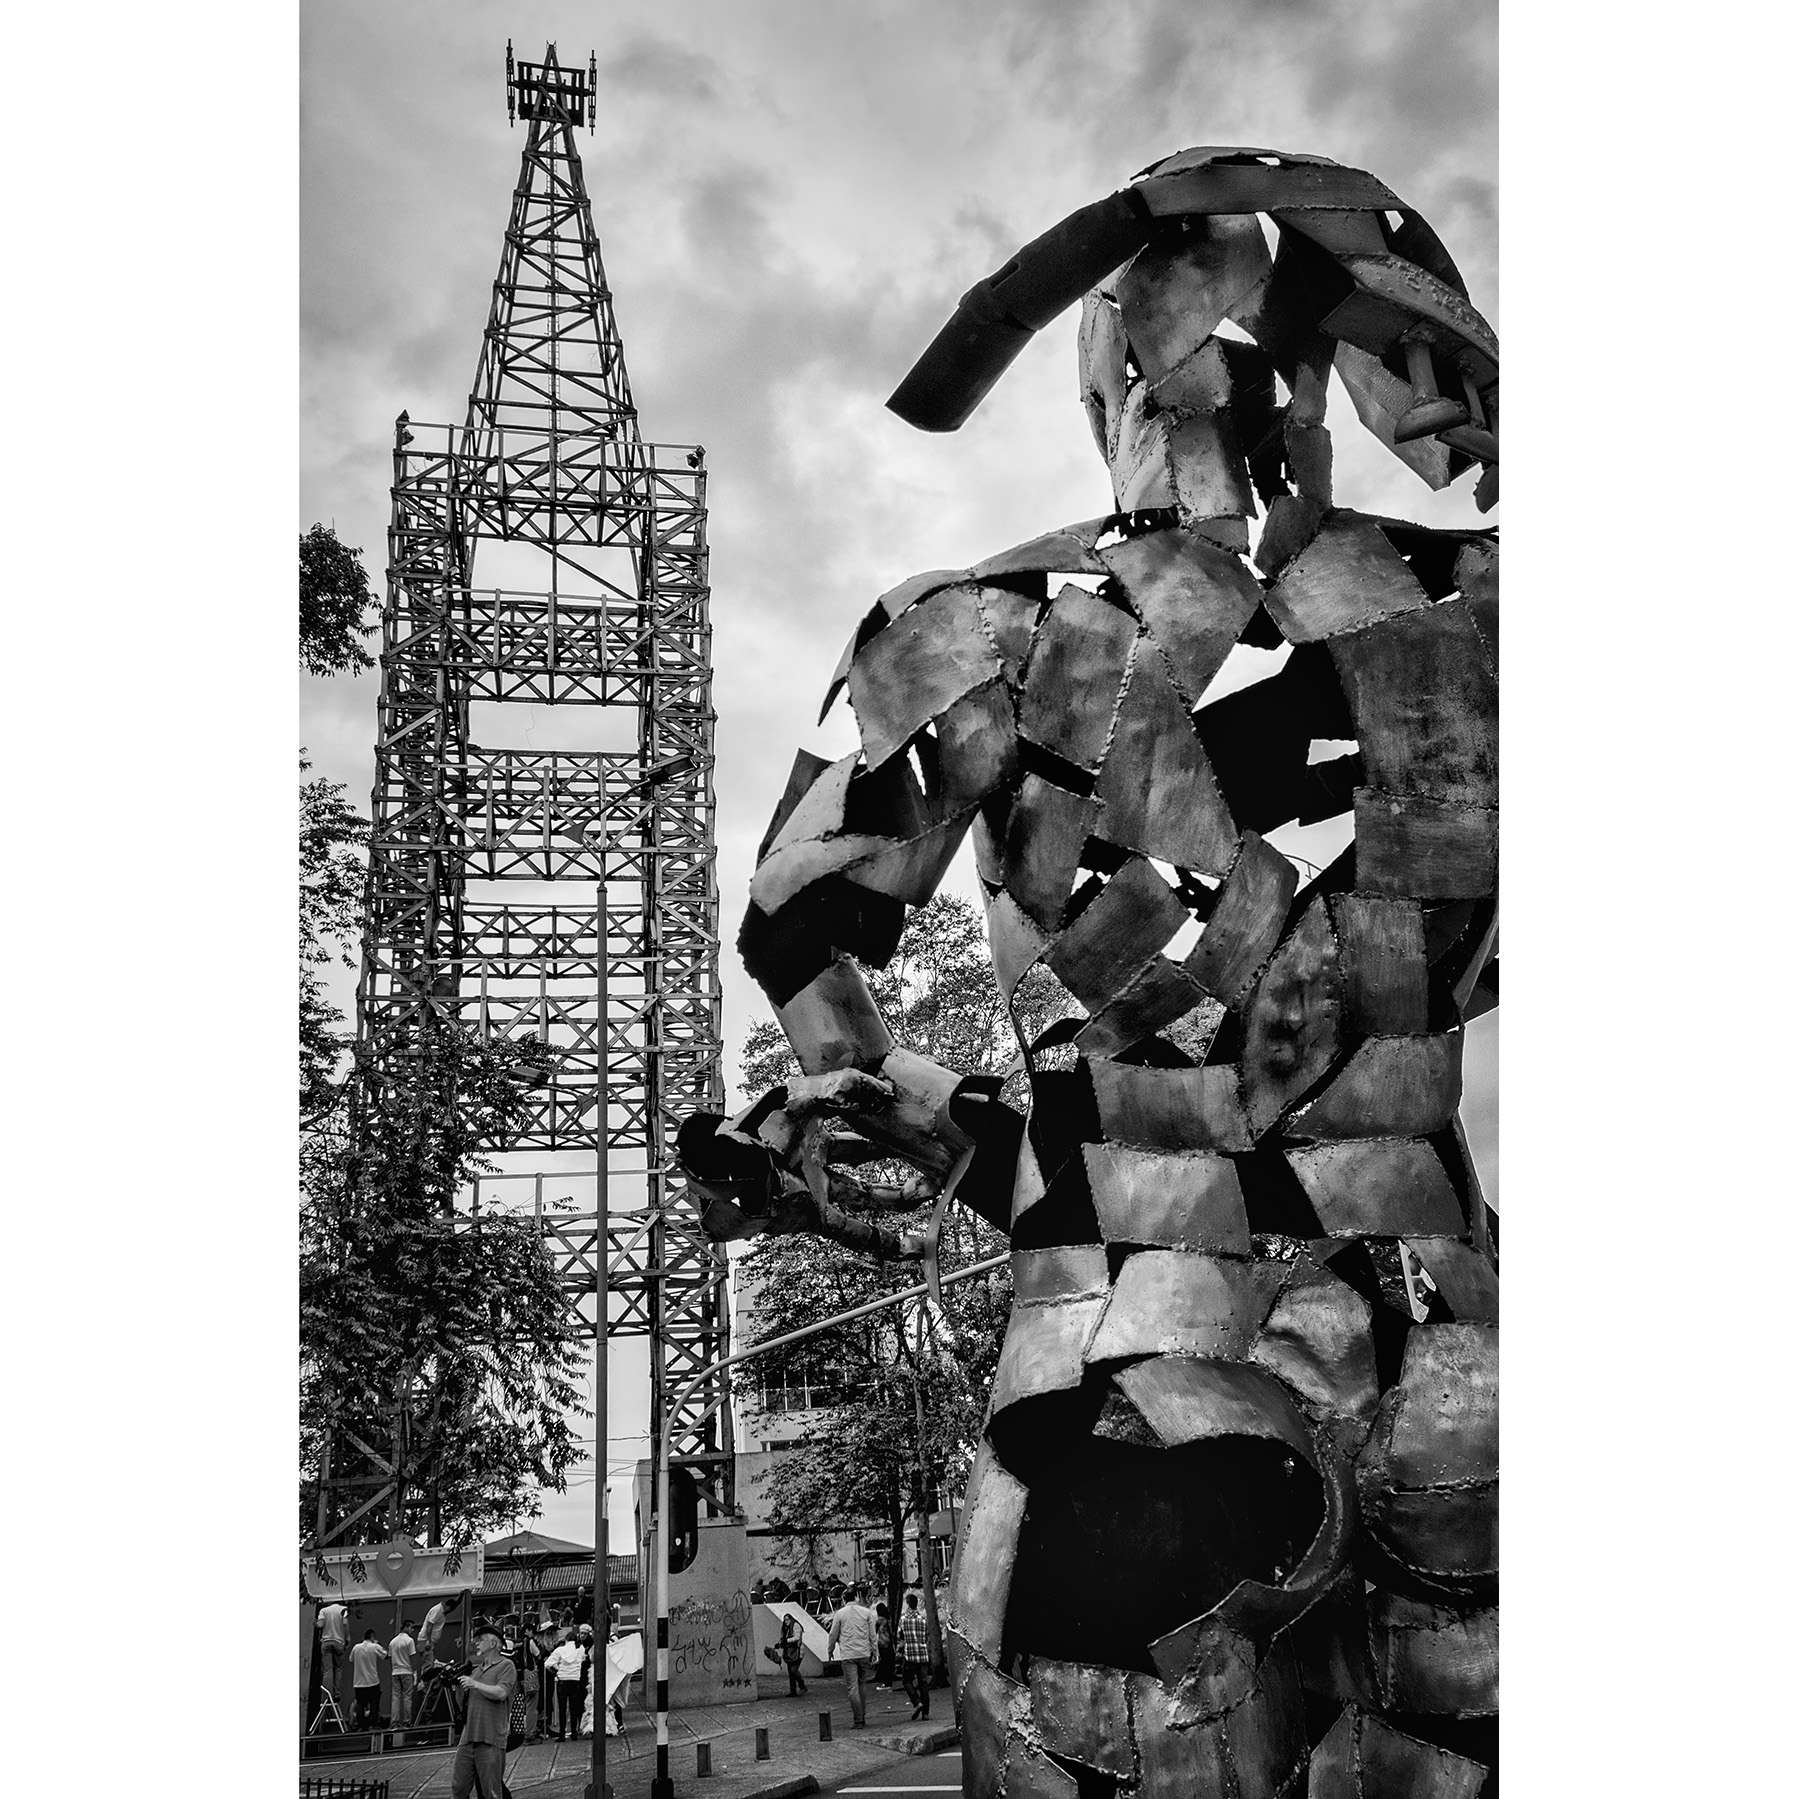 An abstract sculpture towers over the street at Cable Plaza in Manizales, Colombia.